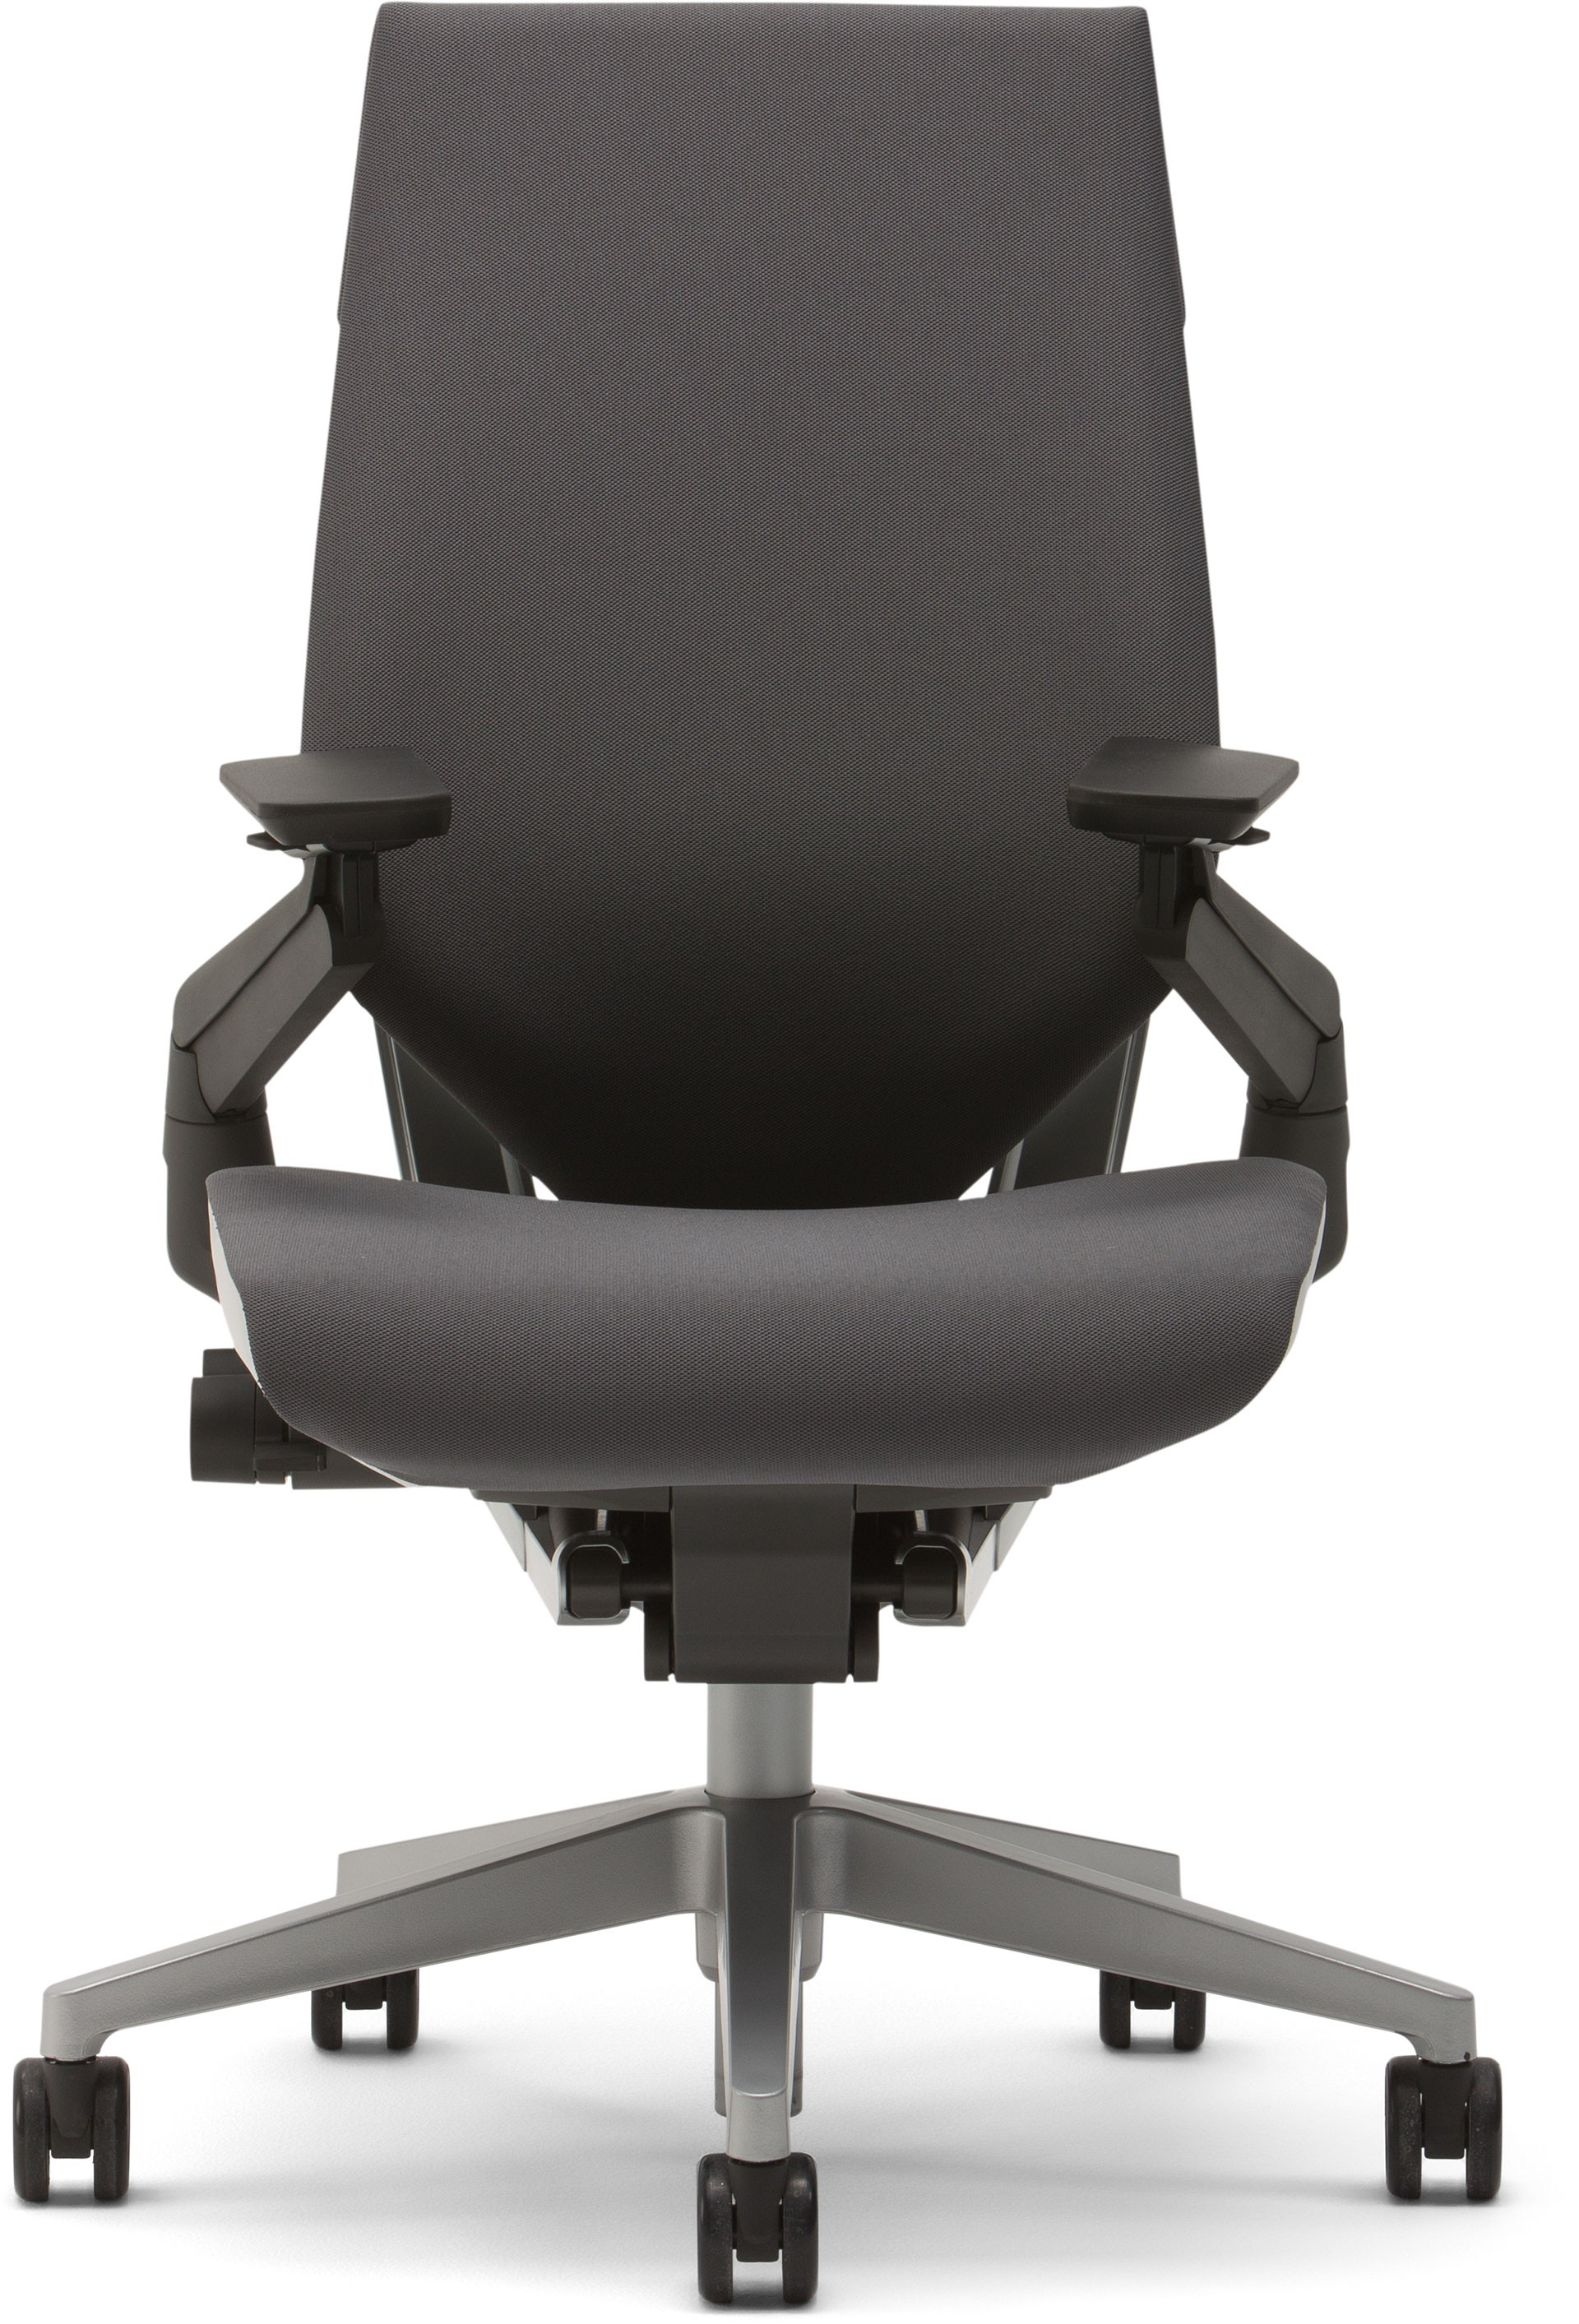 steelcase gesture chair green korean movie office